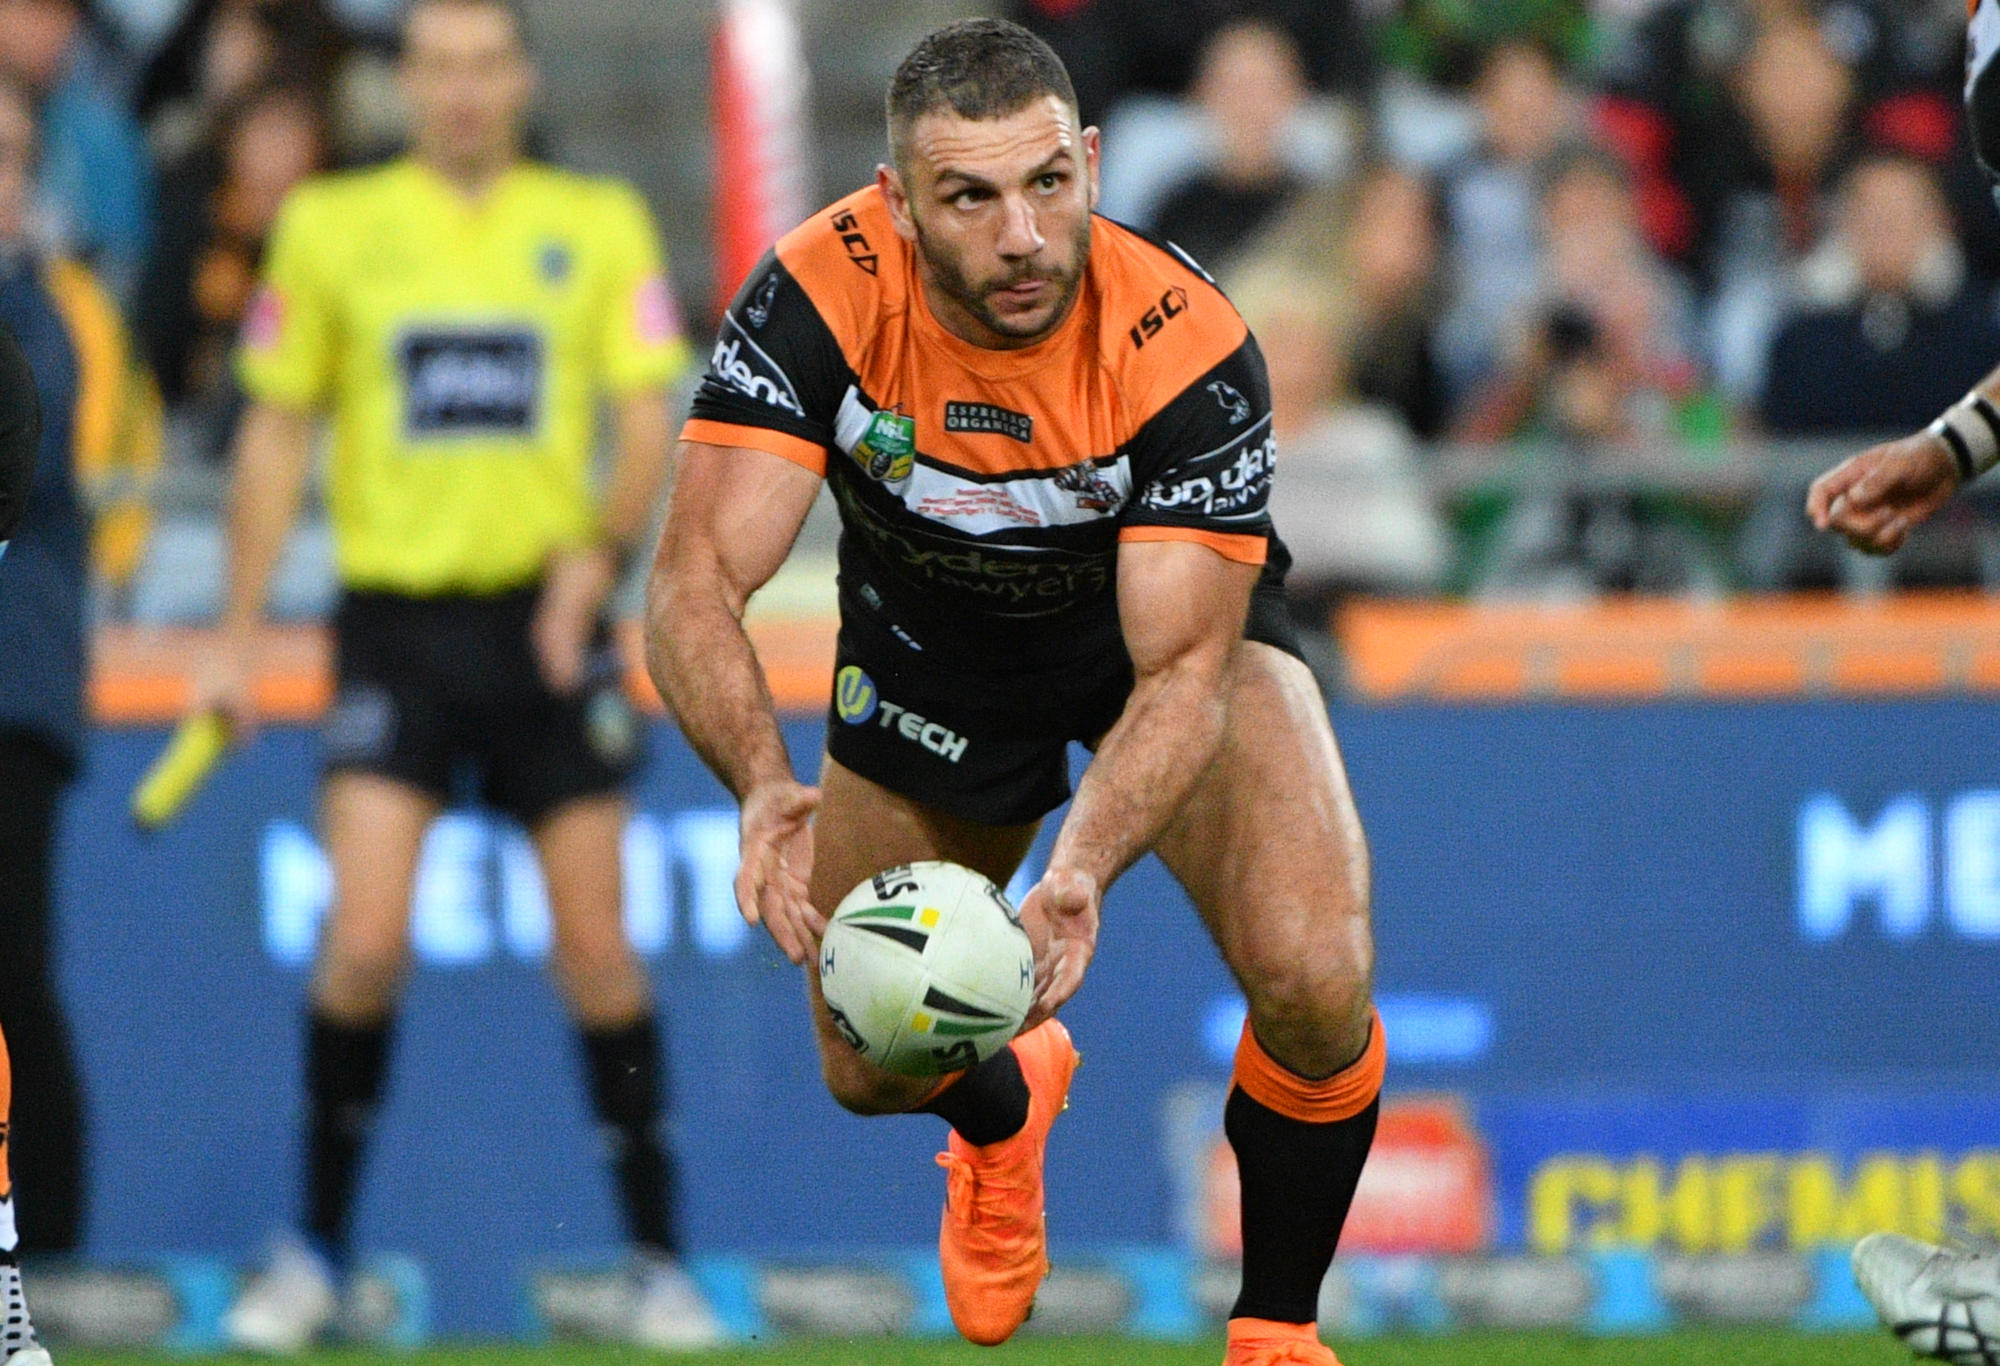 The Tigers' Robbie Farah in action during the Round 19 NRL match against the Rabbitohs.